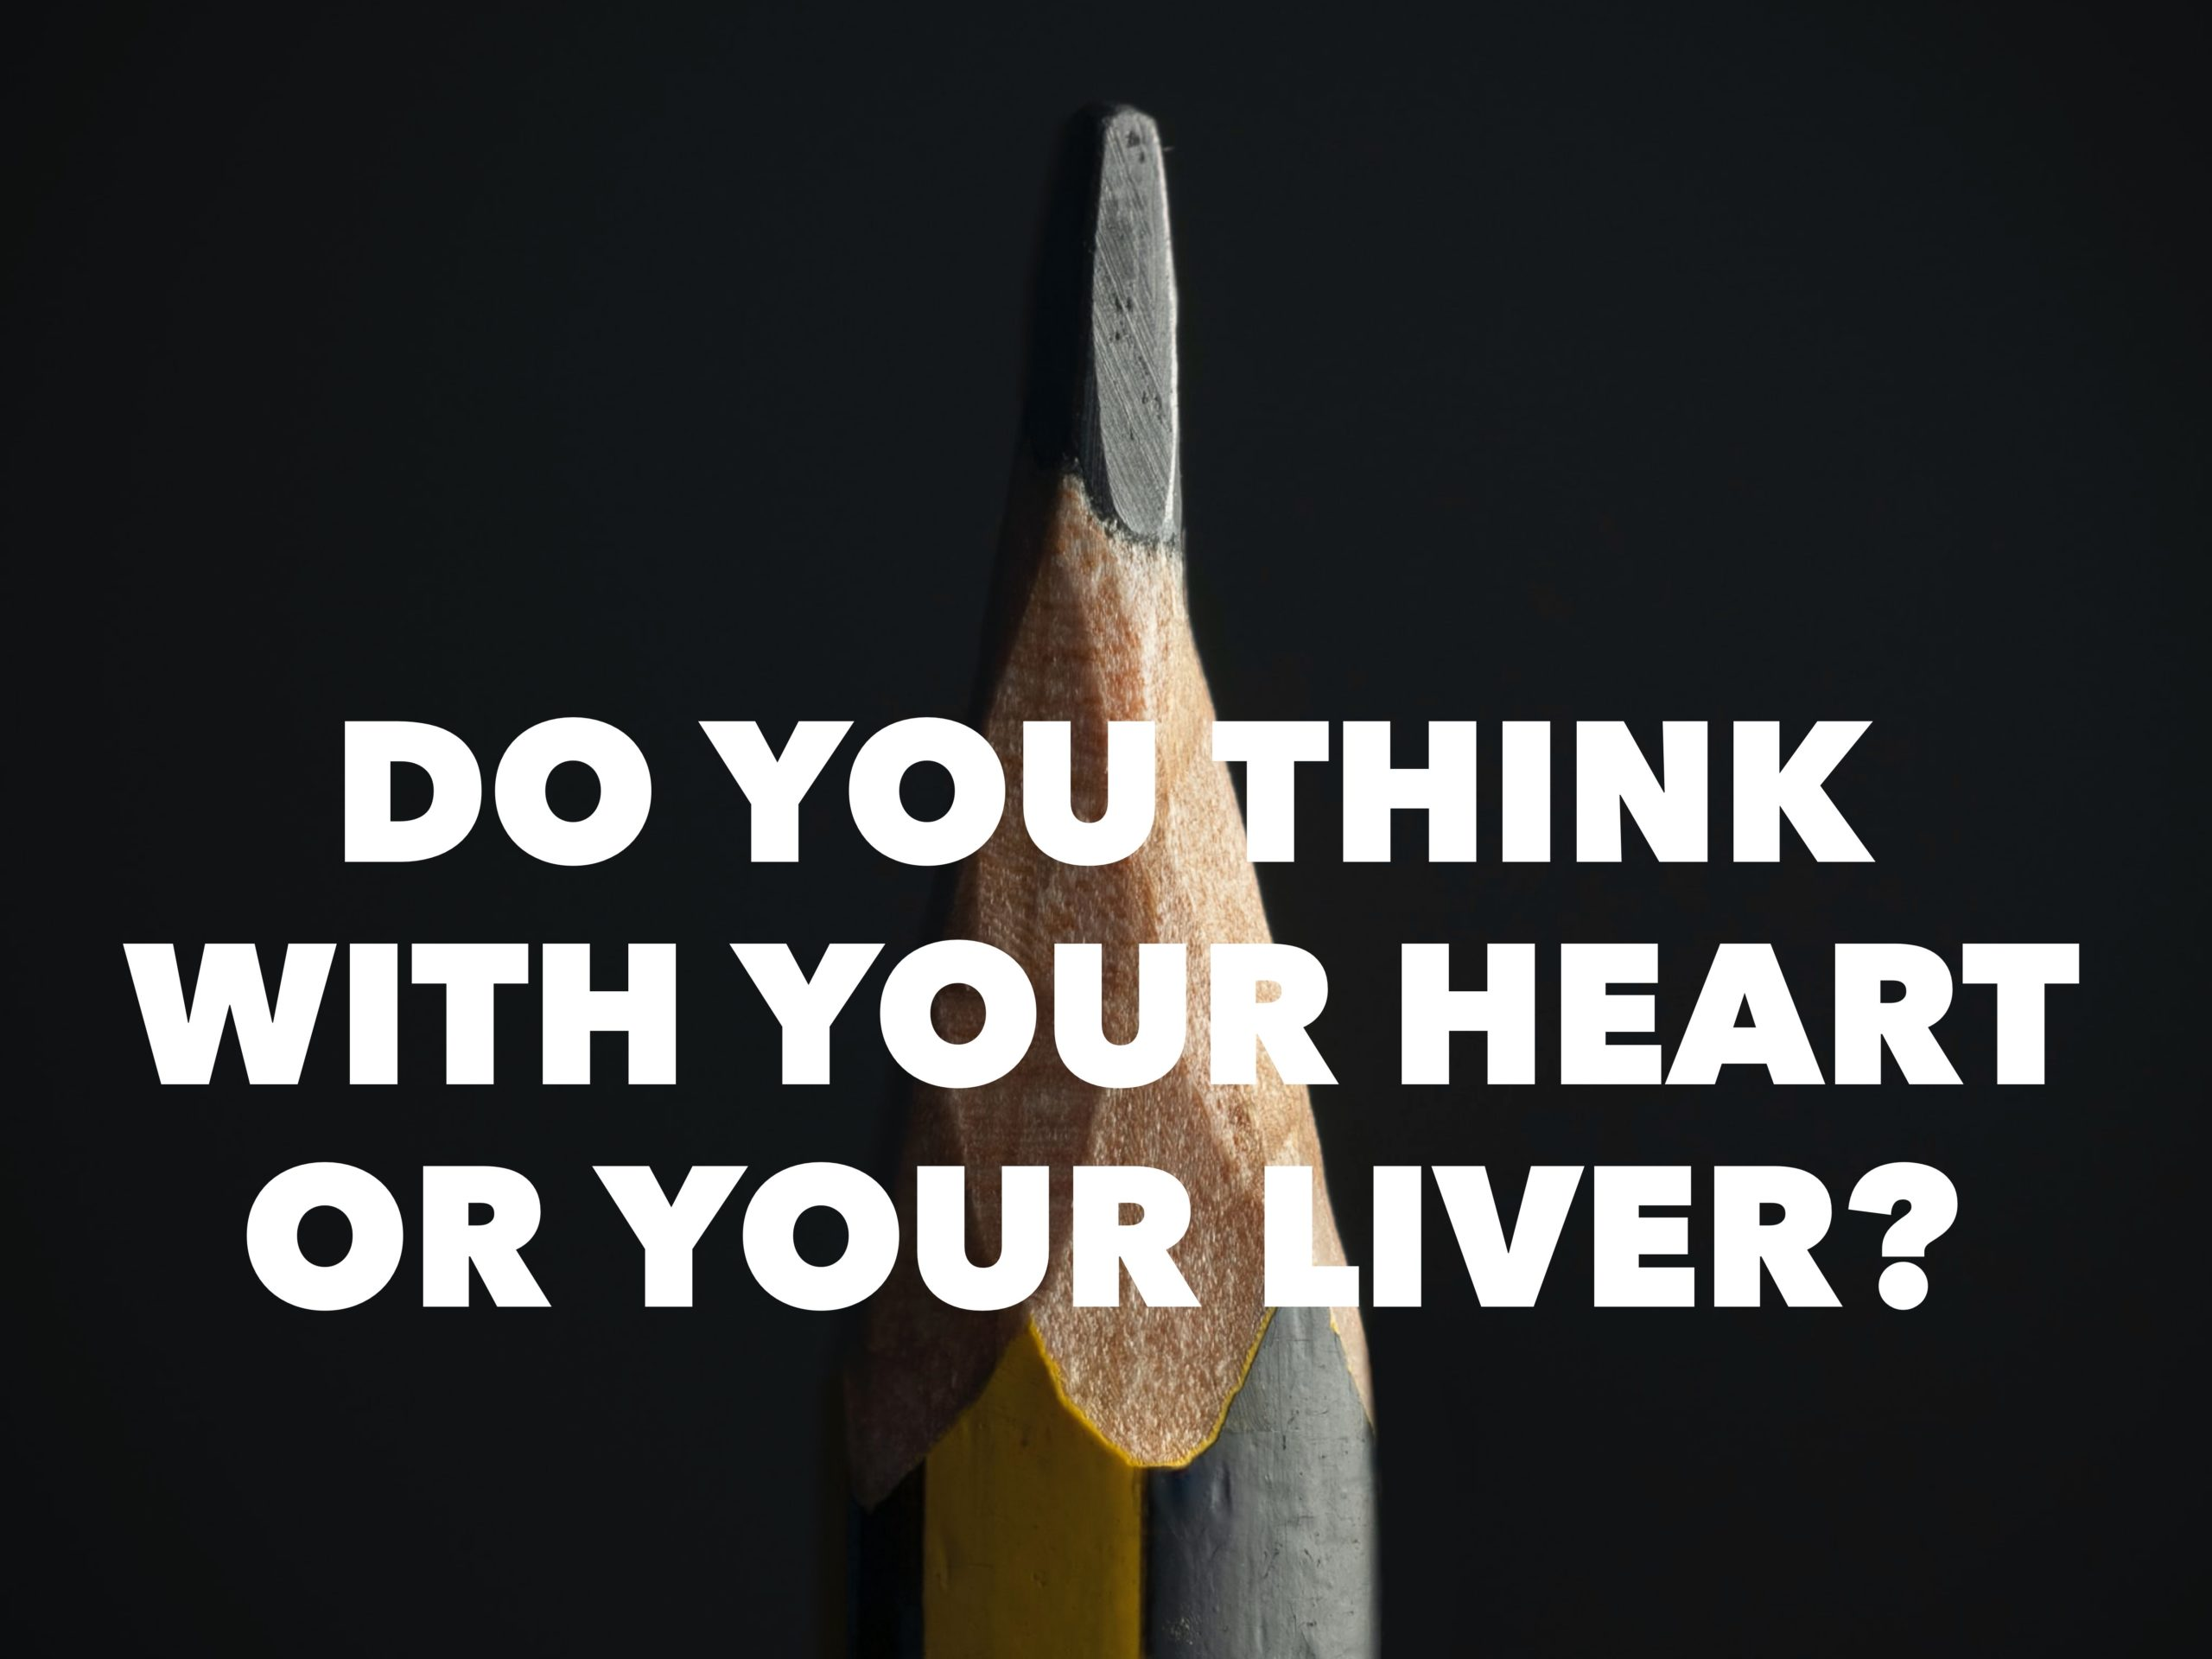 Do You Think With Your Heart or Your Liver?